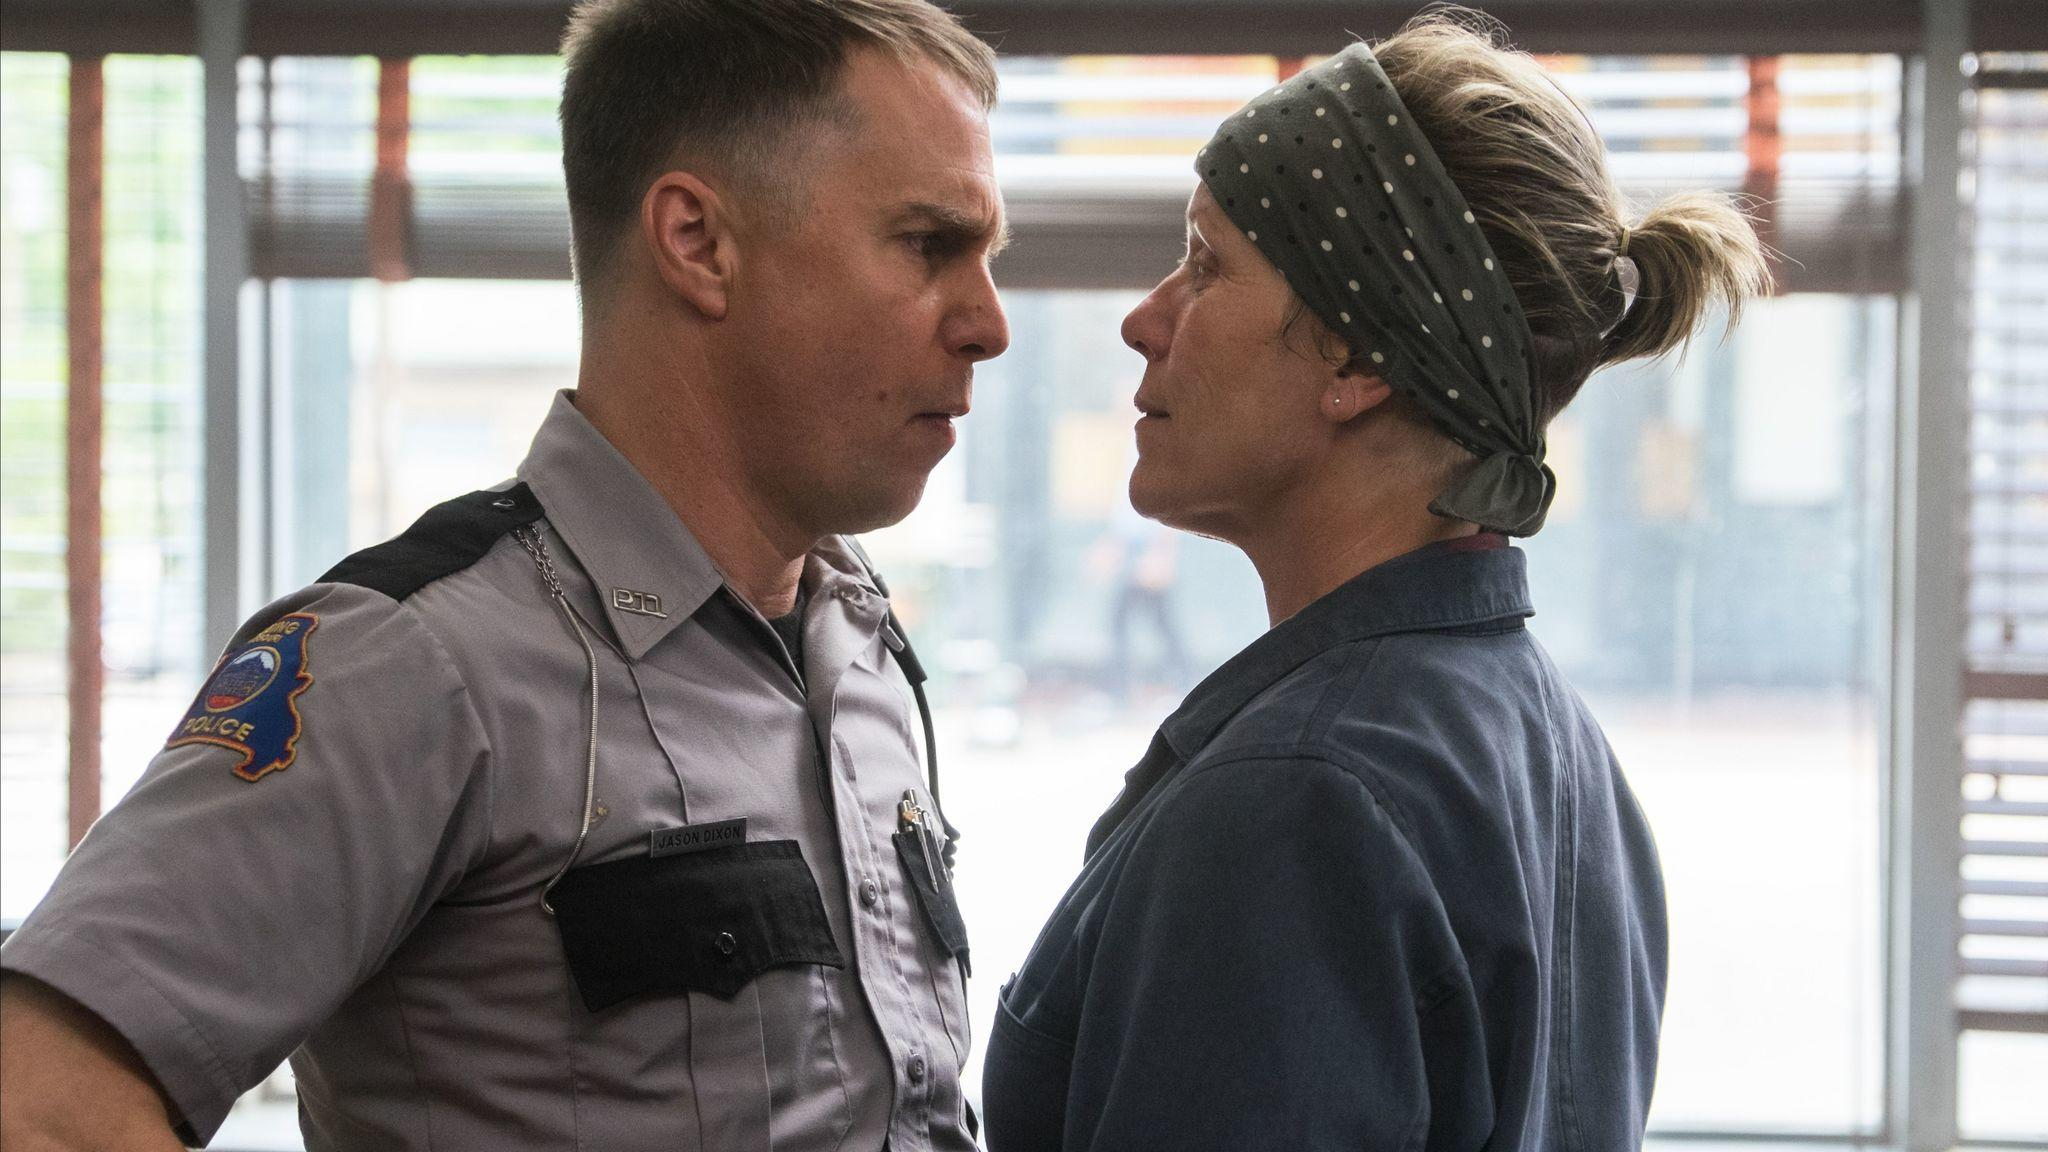 How Three Billboards went from film fest darling to awards-season controversy